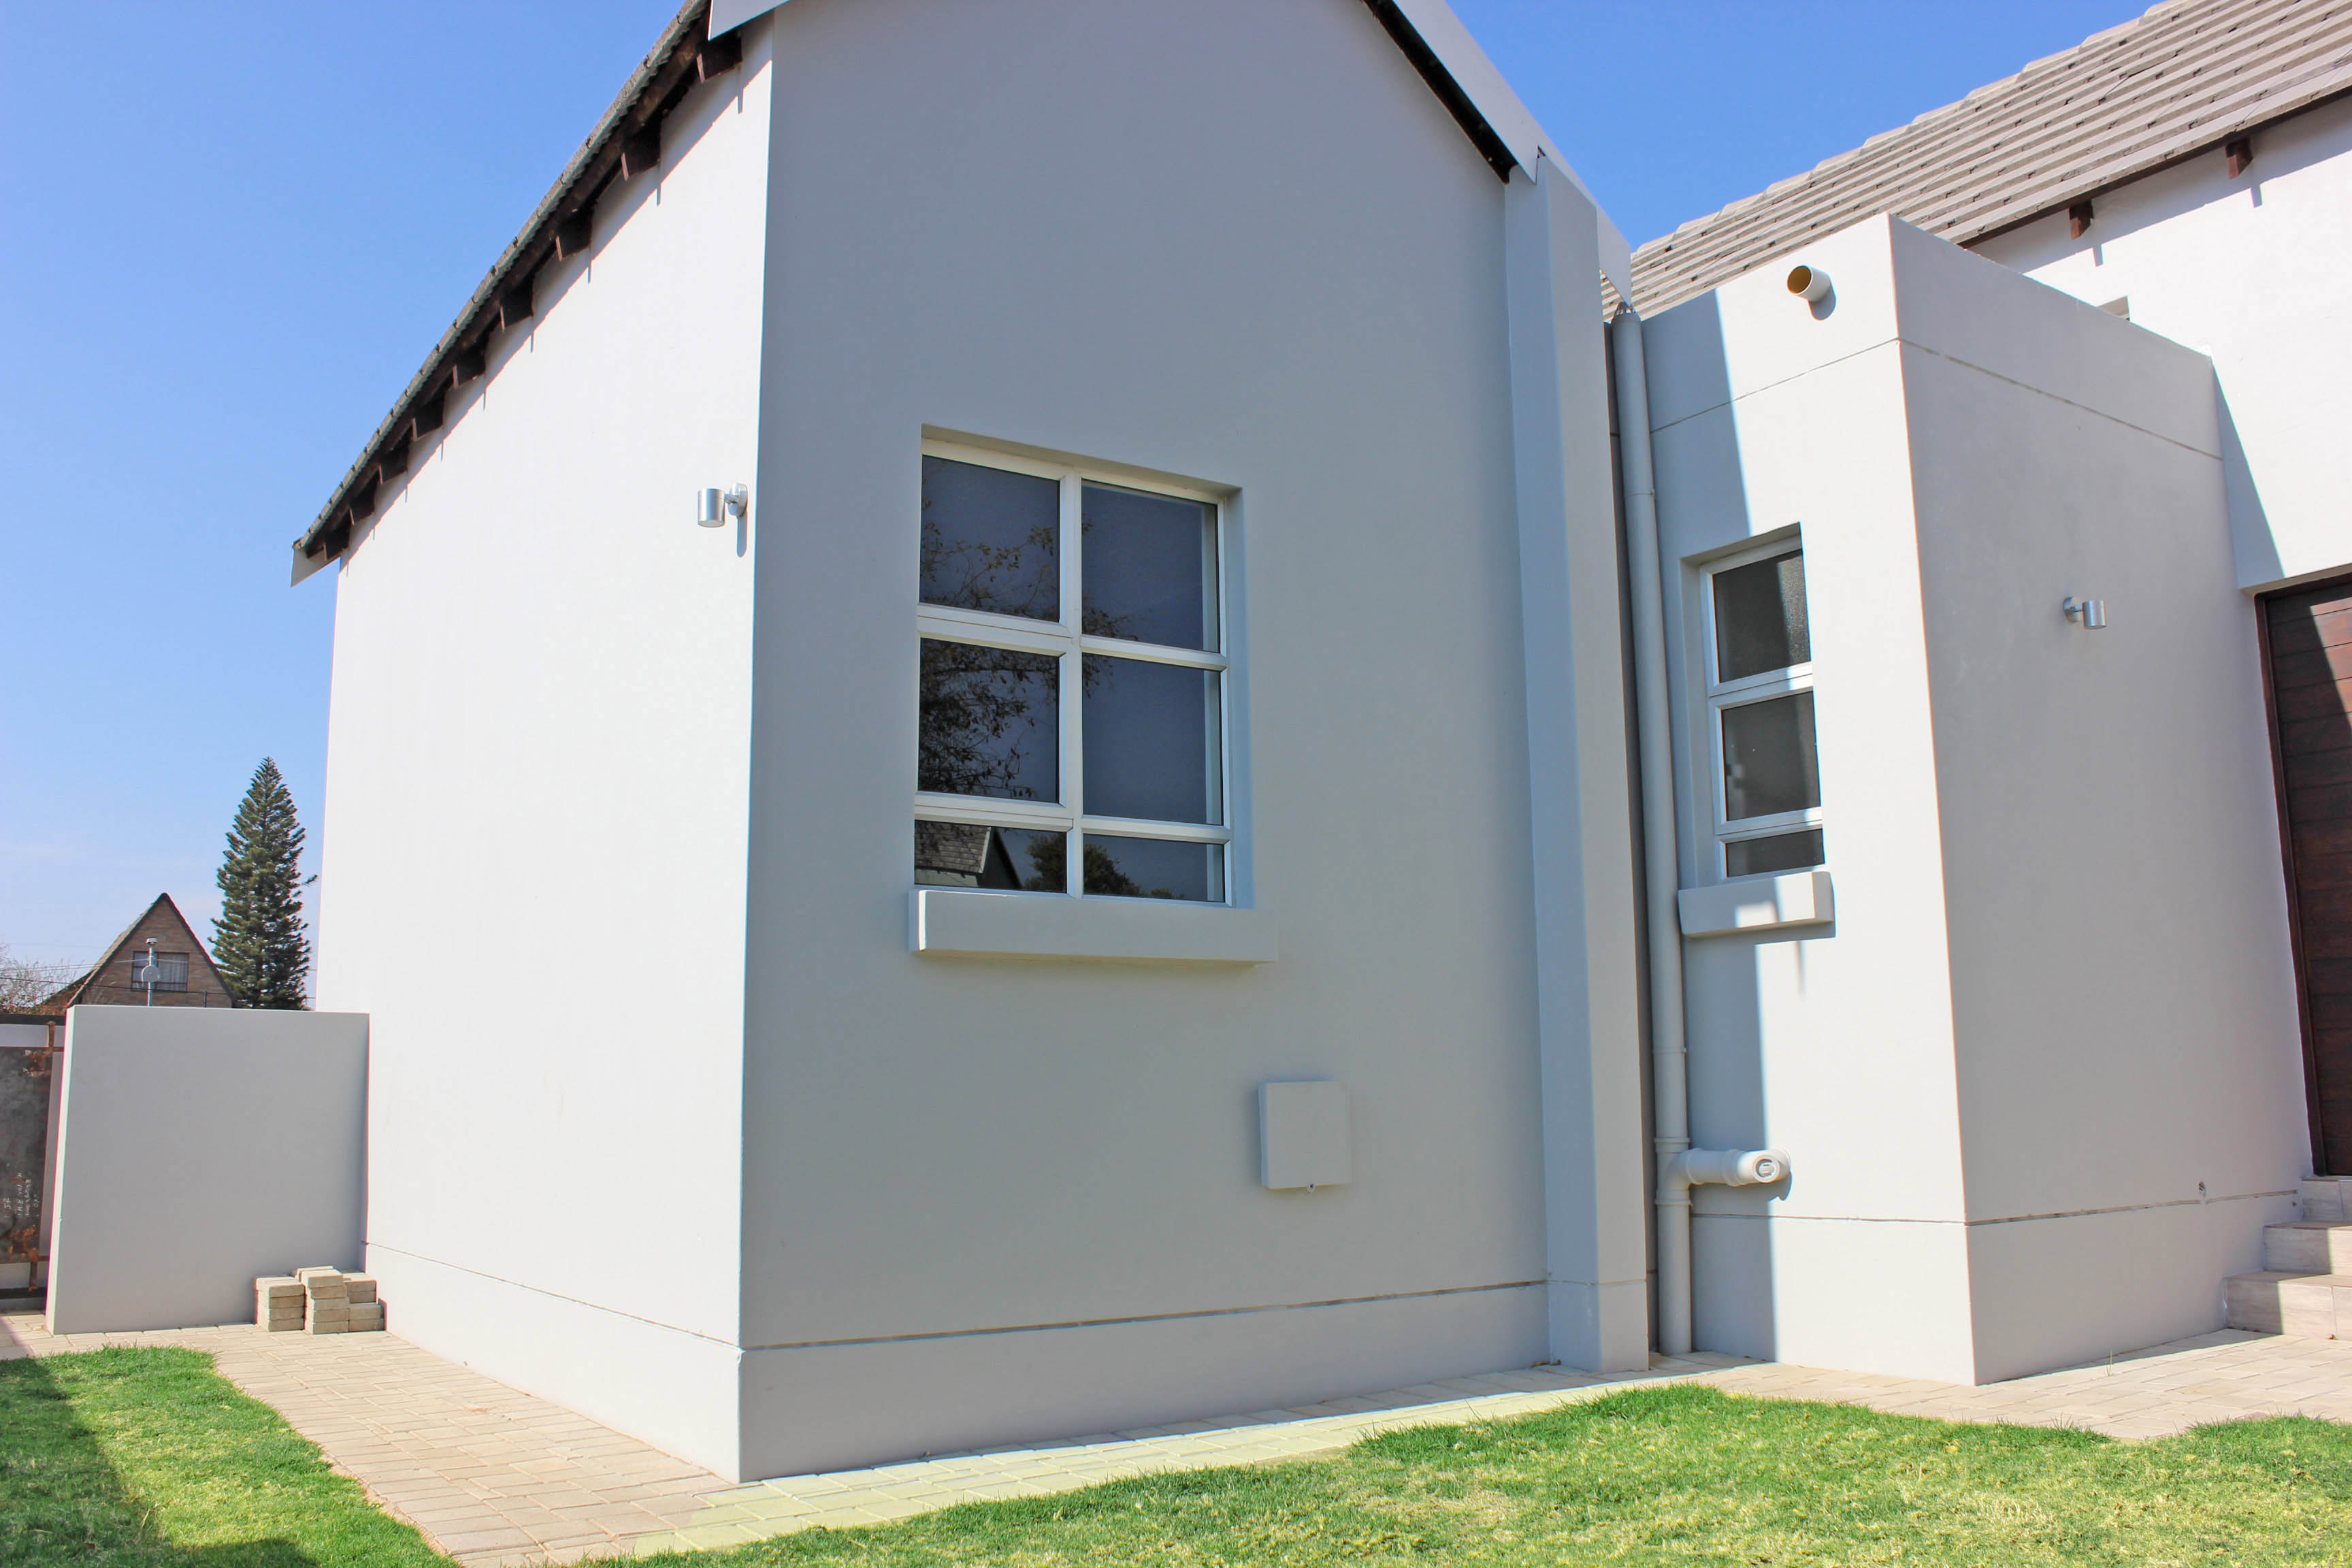 3 Bedroom Townhouse for sale in North Riding ENT0075308 : photo#1